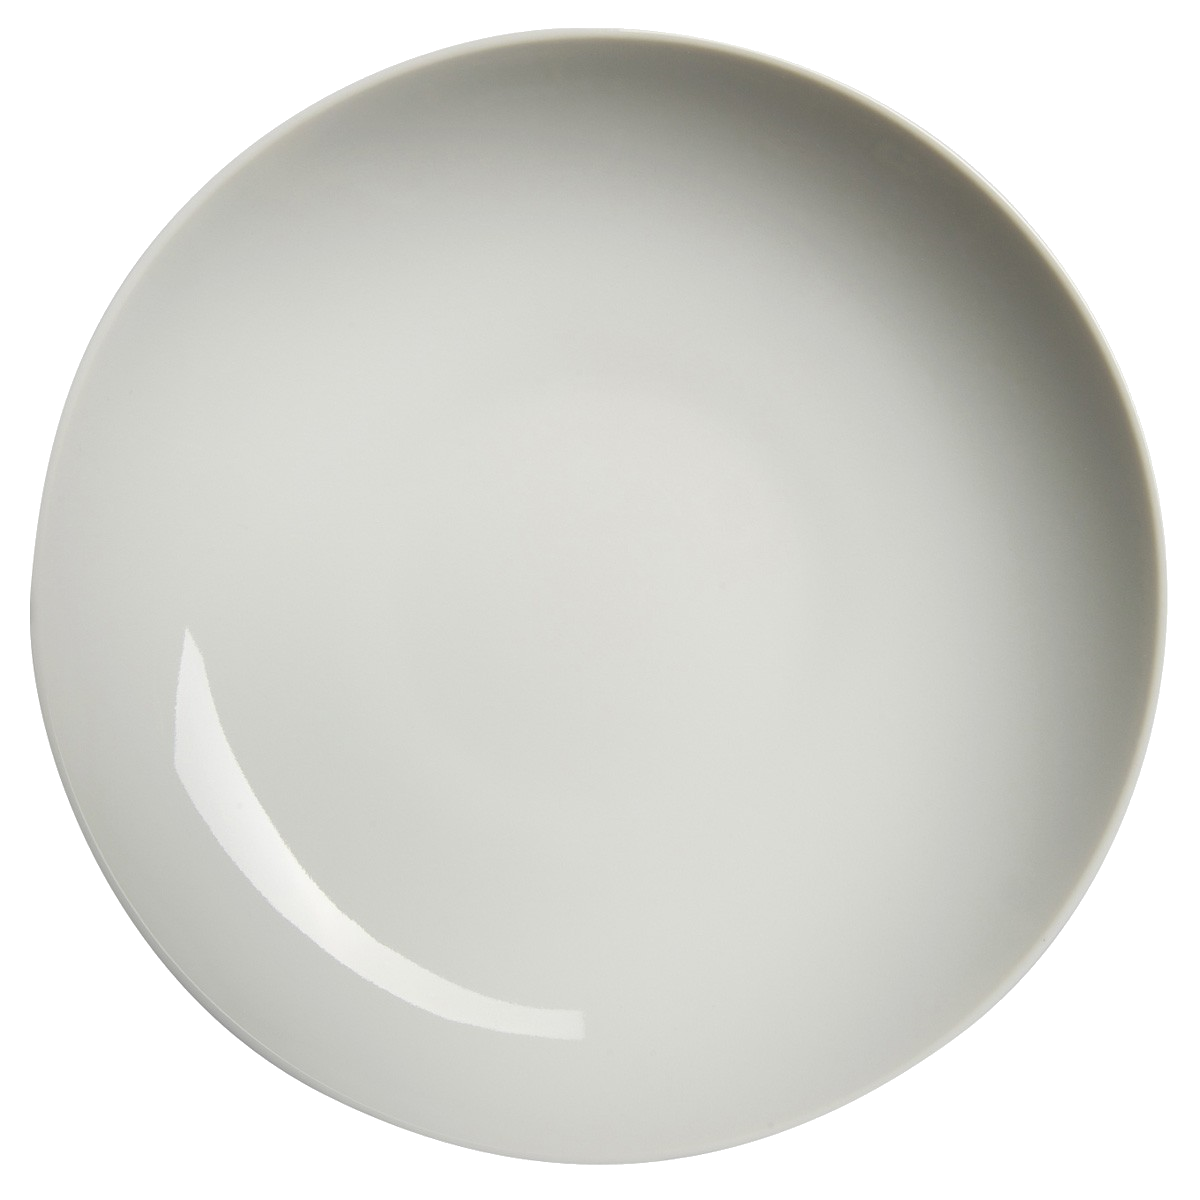 Plate Png Image - Plate, Transparent background PNG HD thumbnail